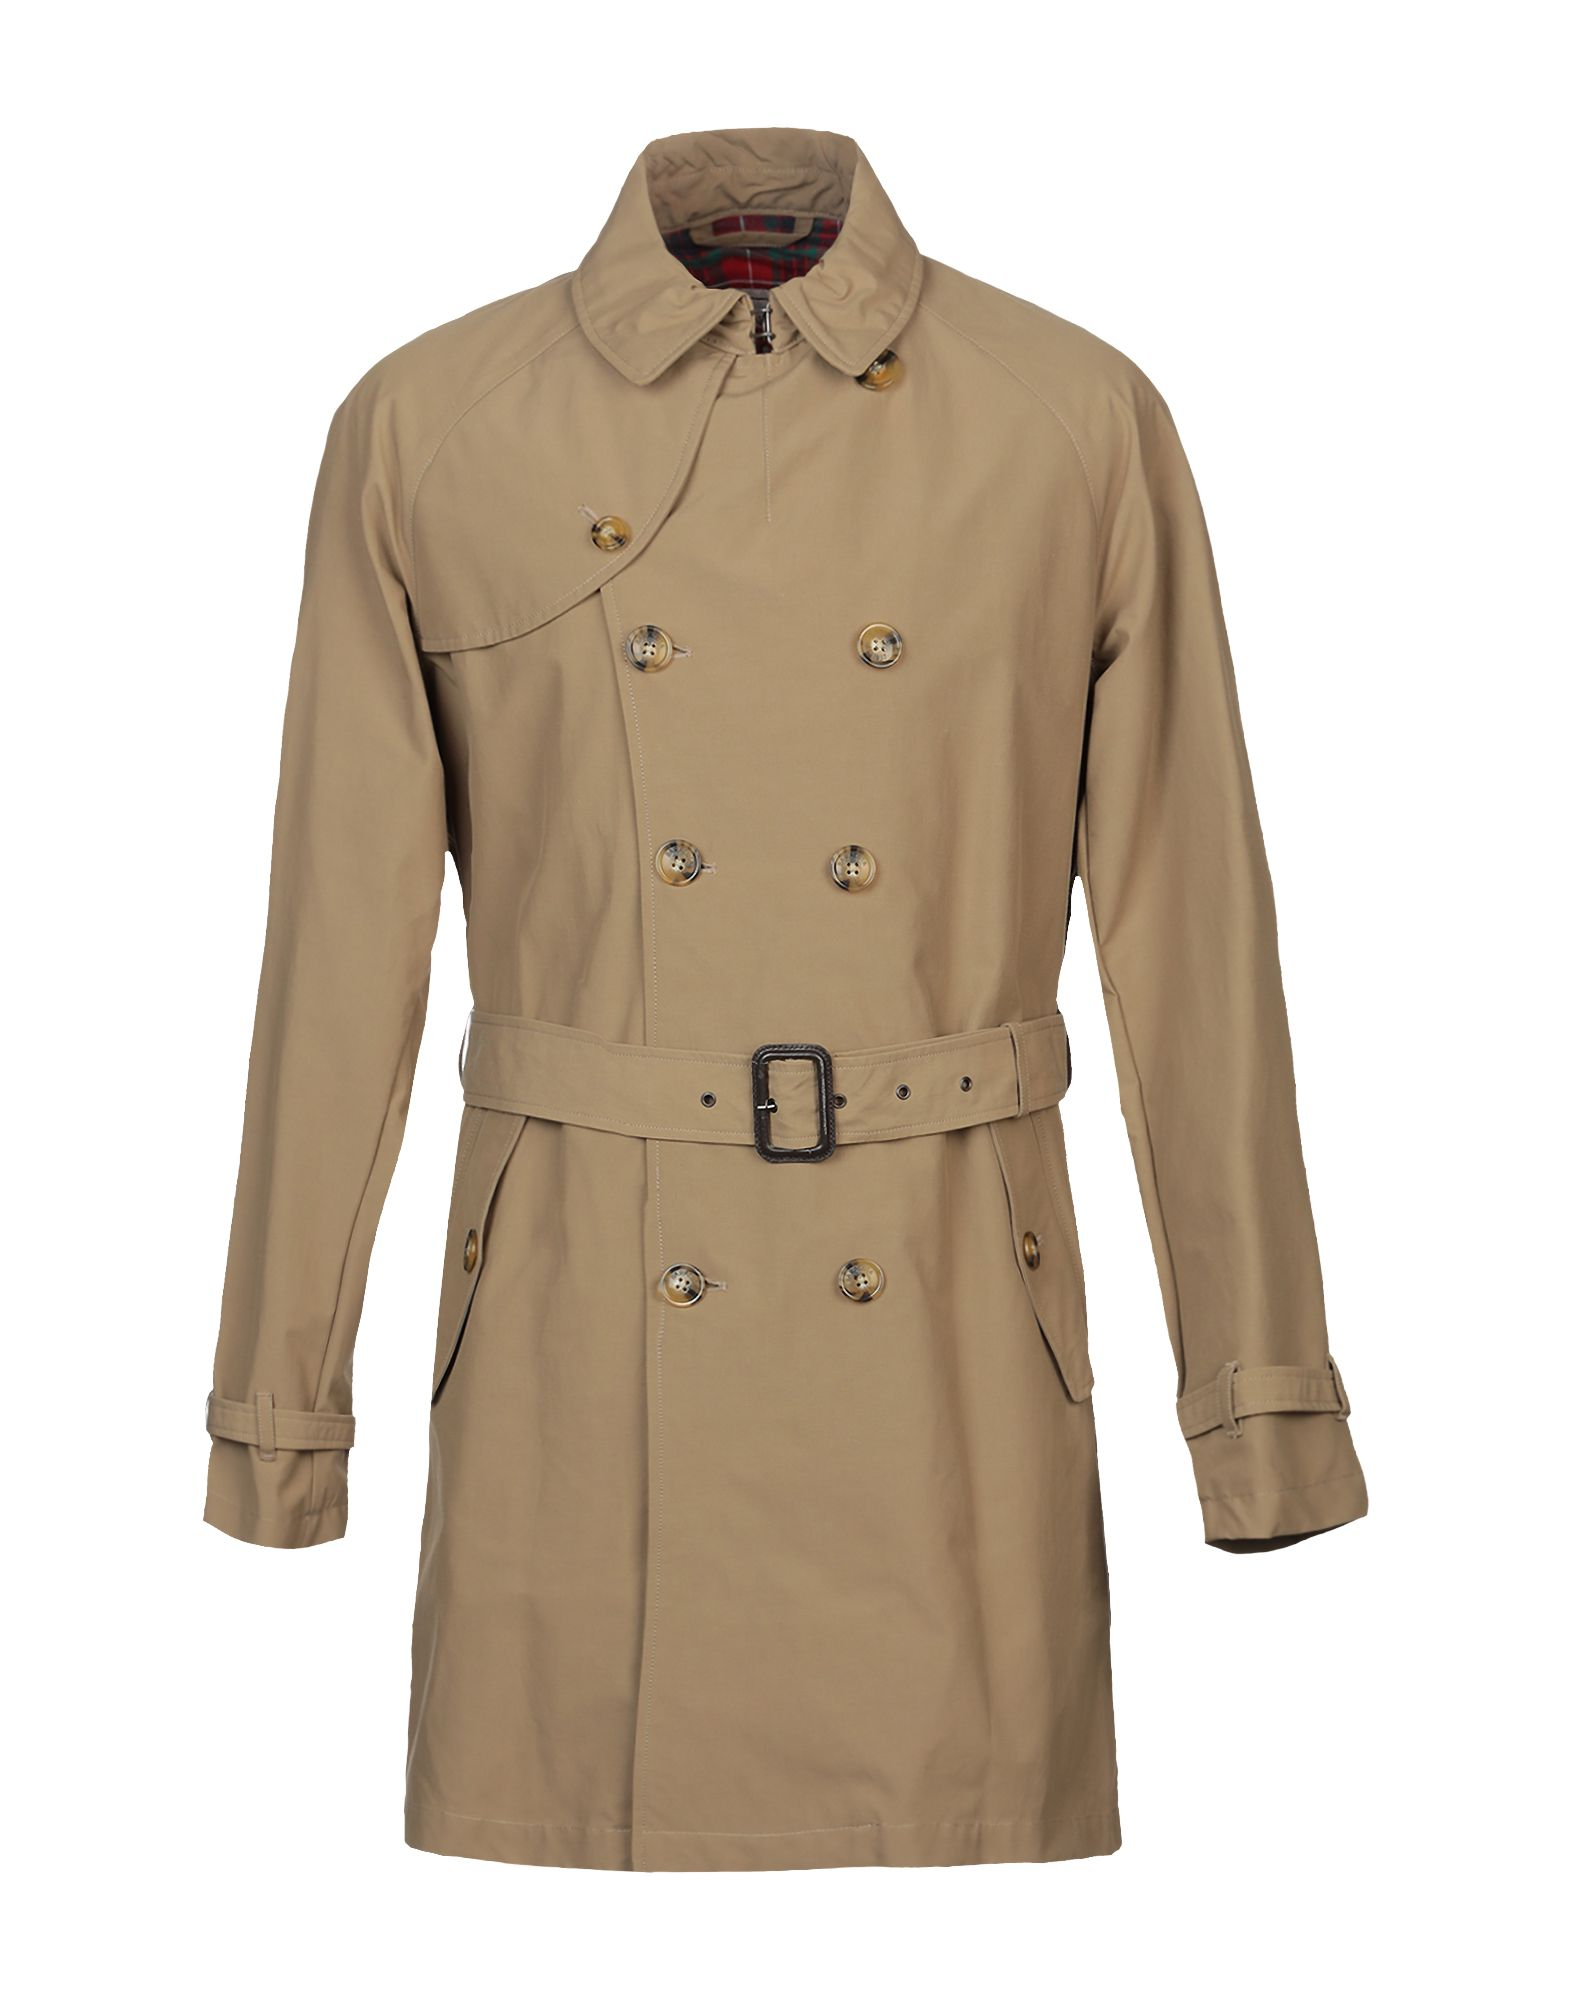 BARACUTA Overcoats in Khaki